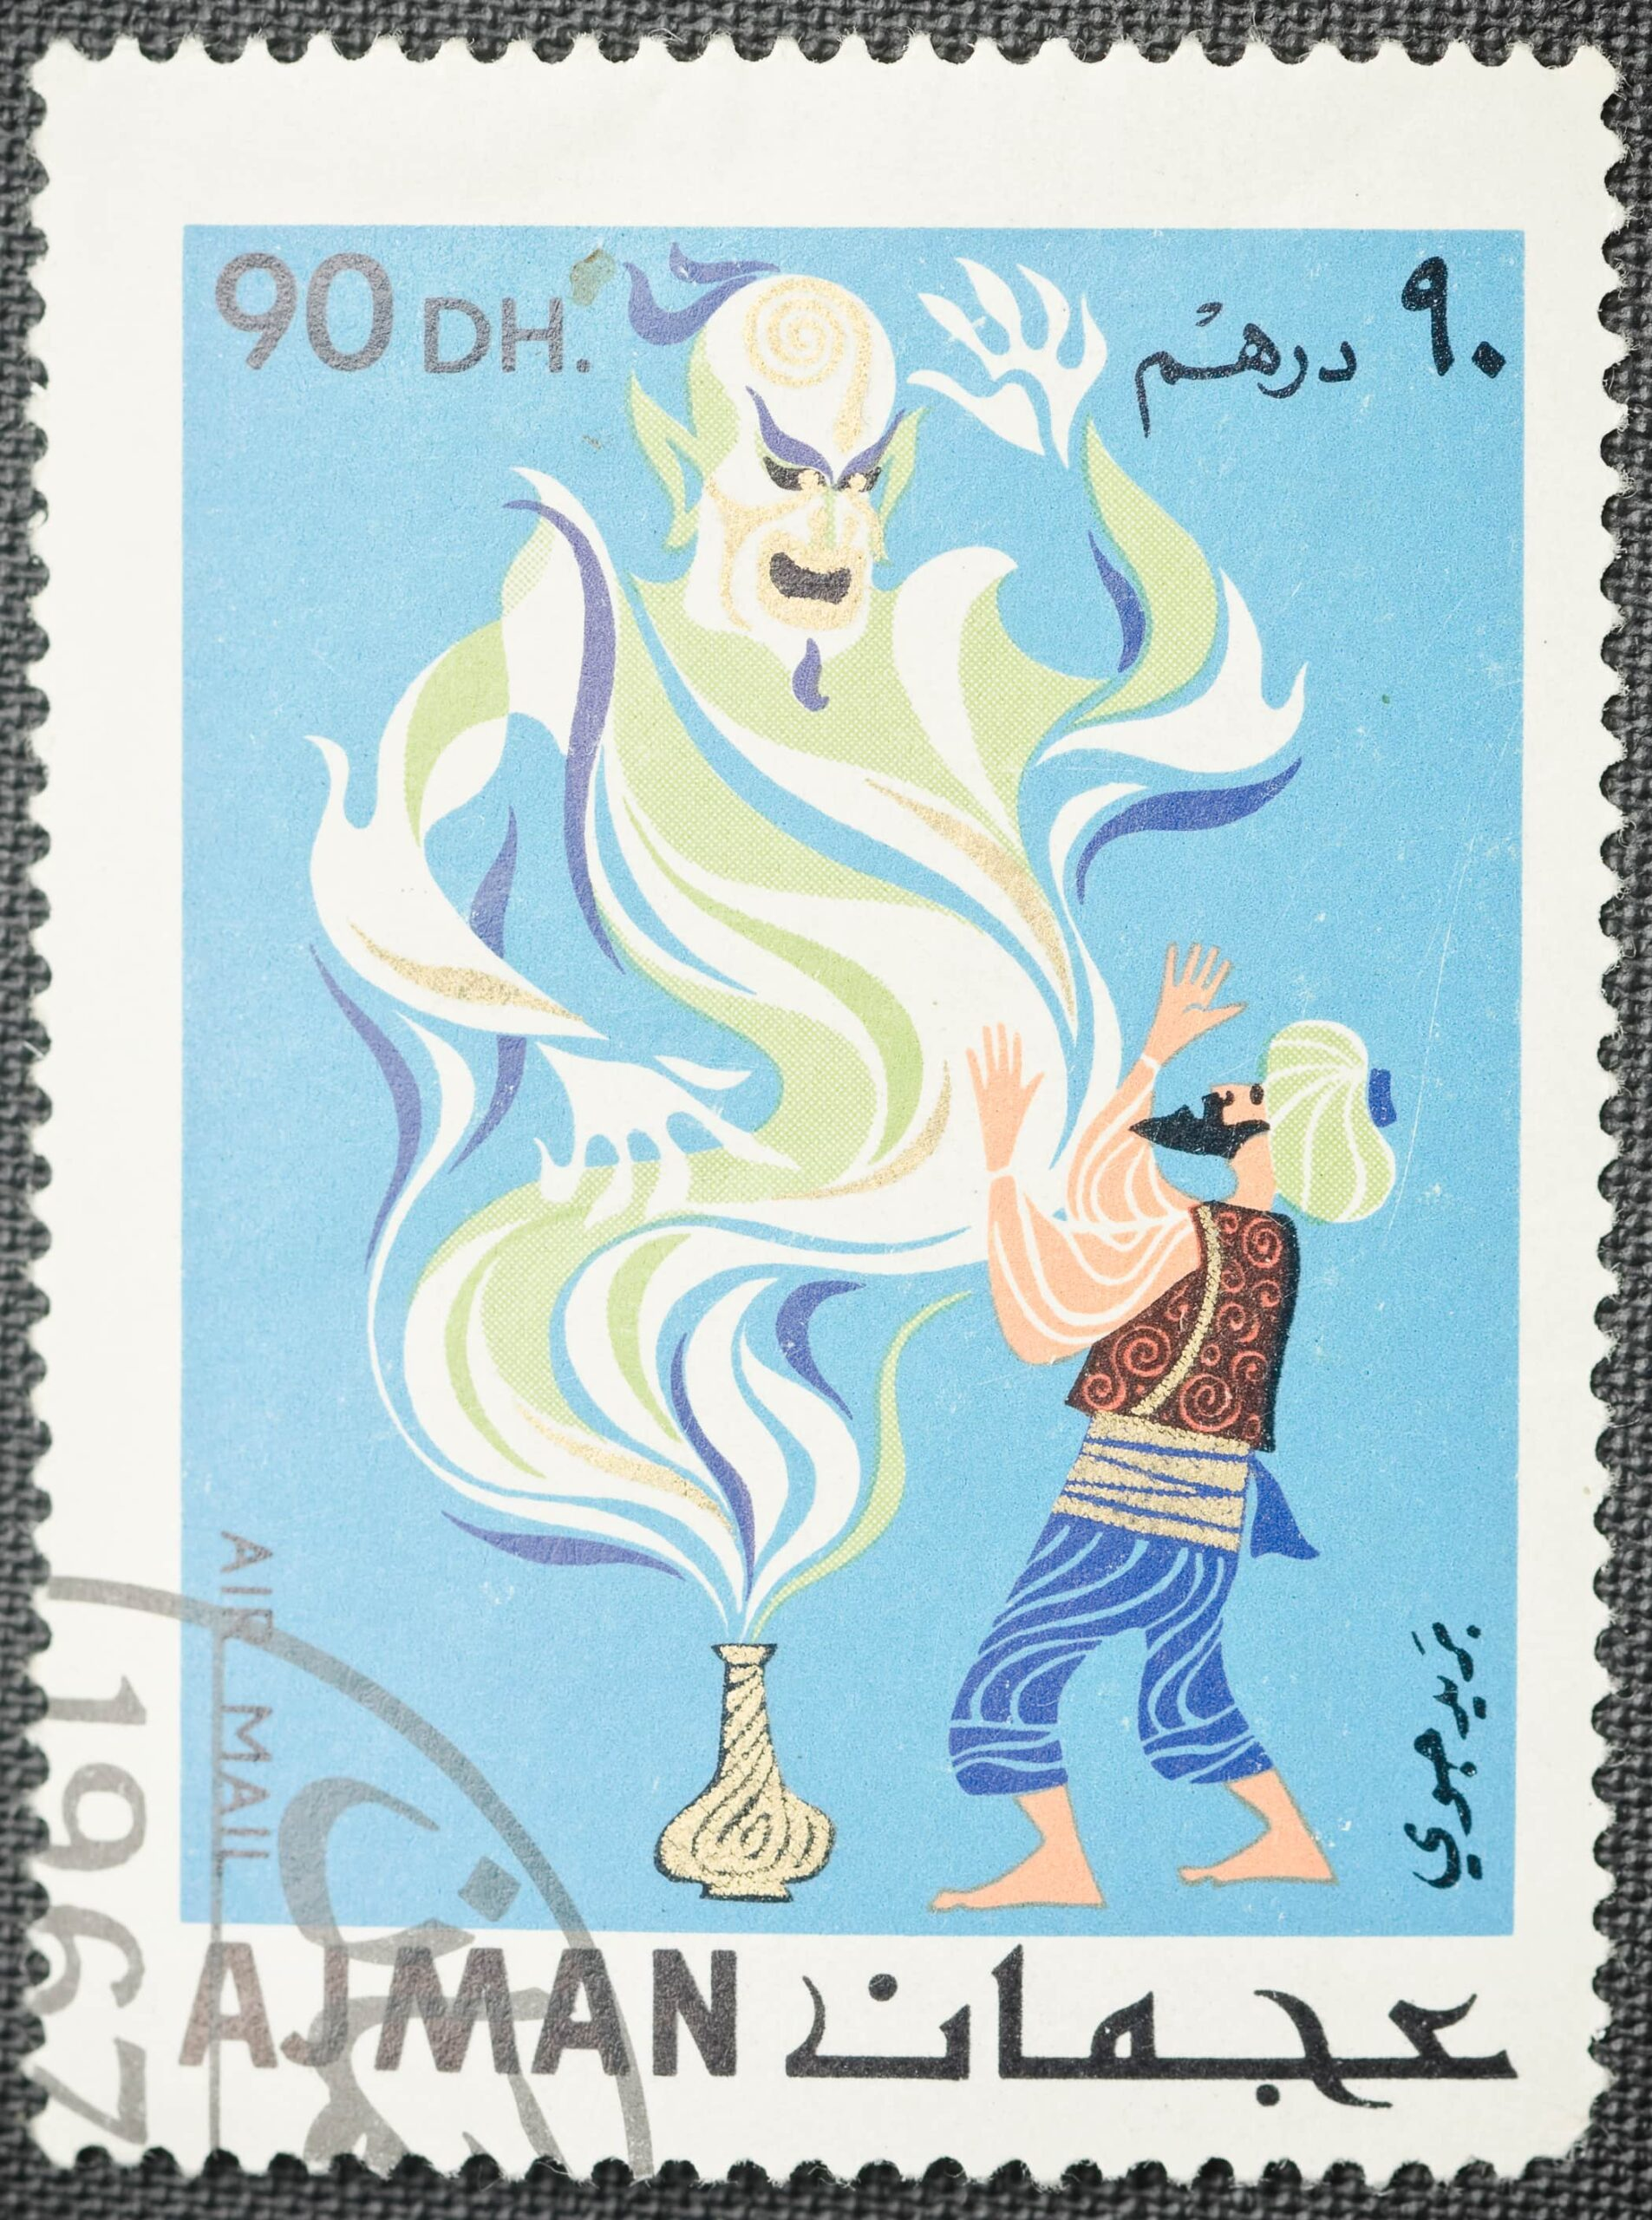 Genie out of the bottle represented in Ajman Postage Stamp